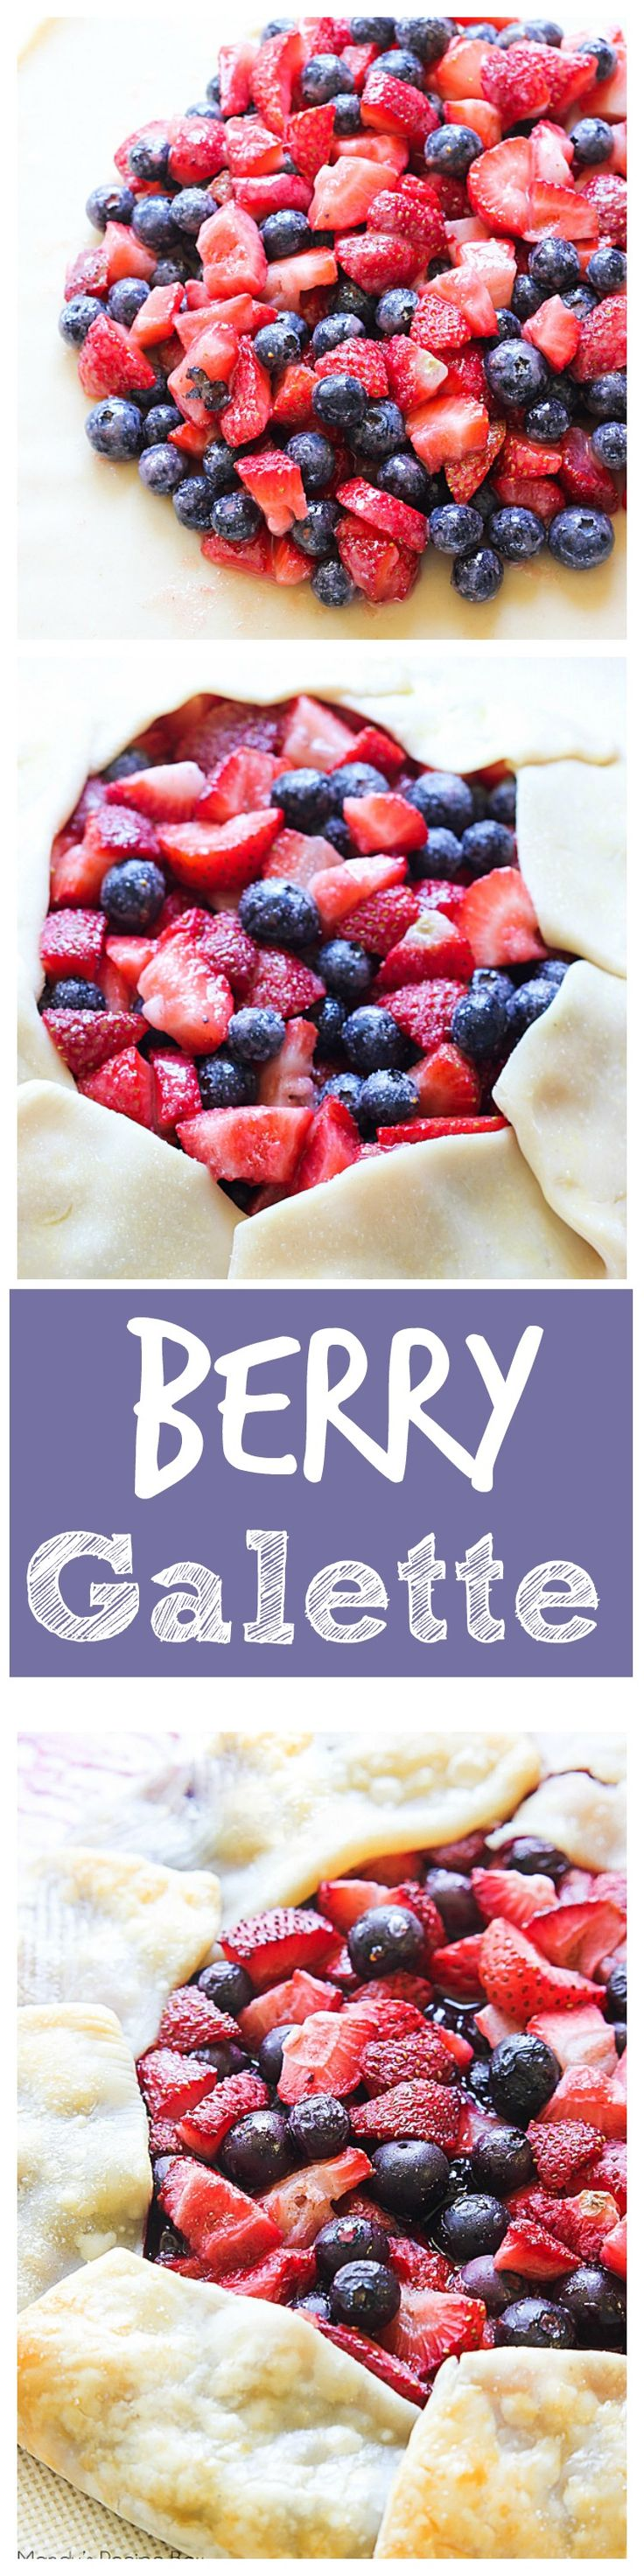 This Berry Galette is a free form pie that's baked on a baking sheet. It's really easy to make and everyone will love it!